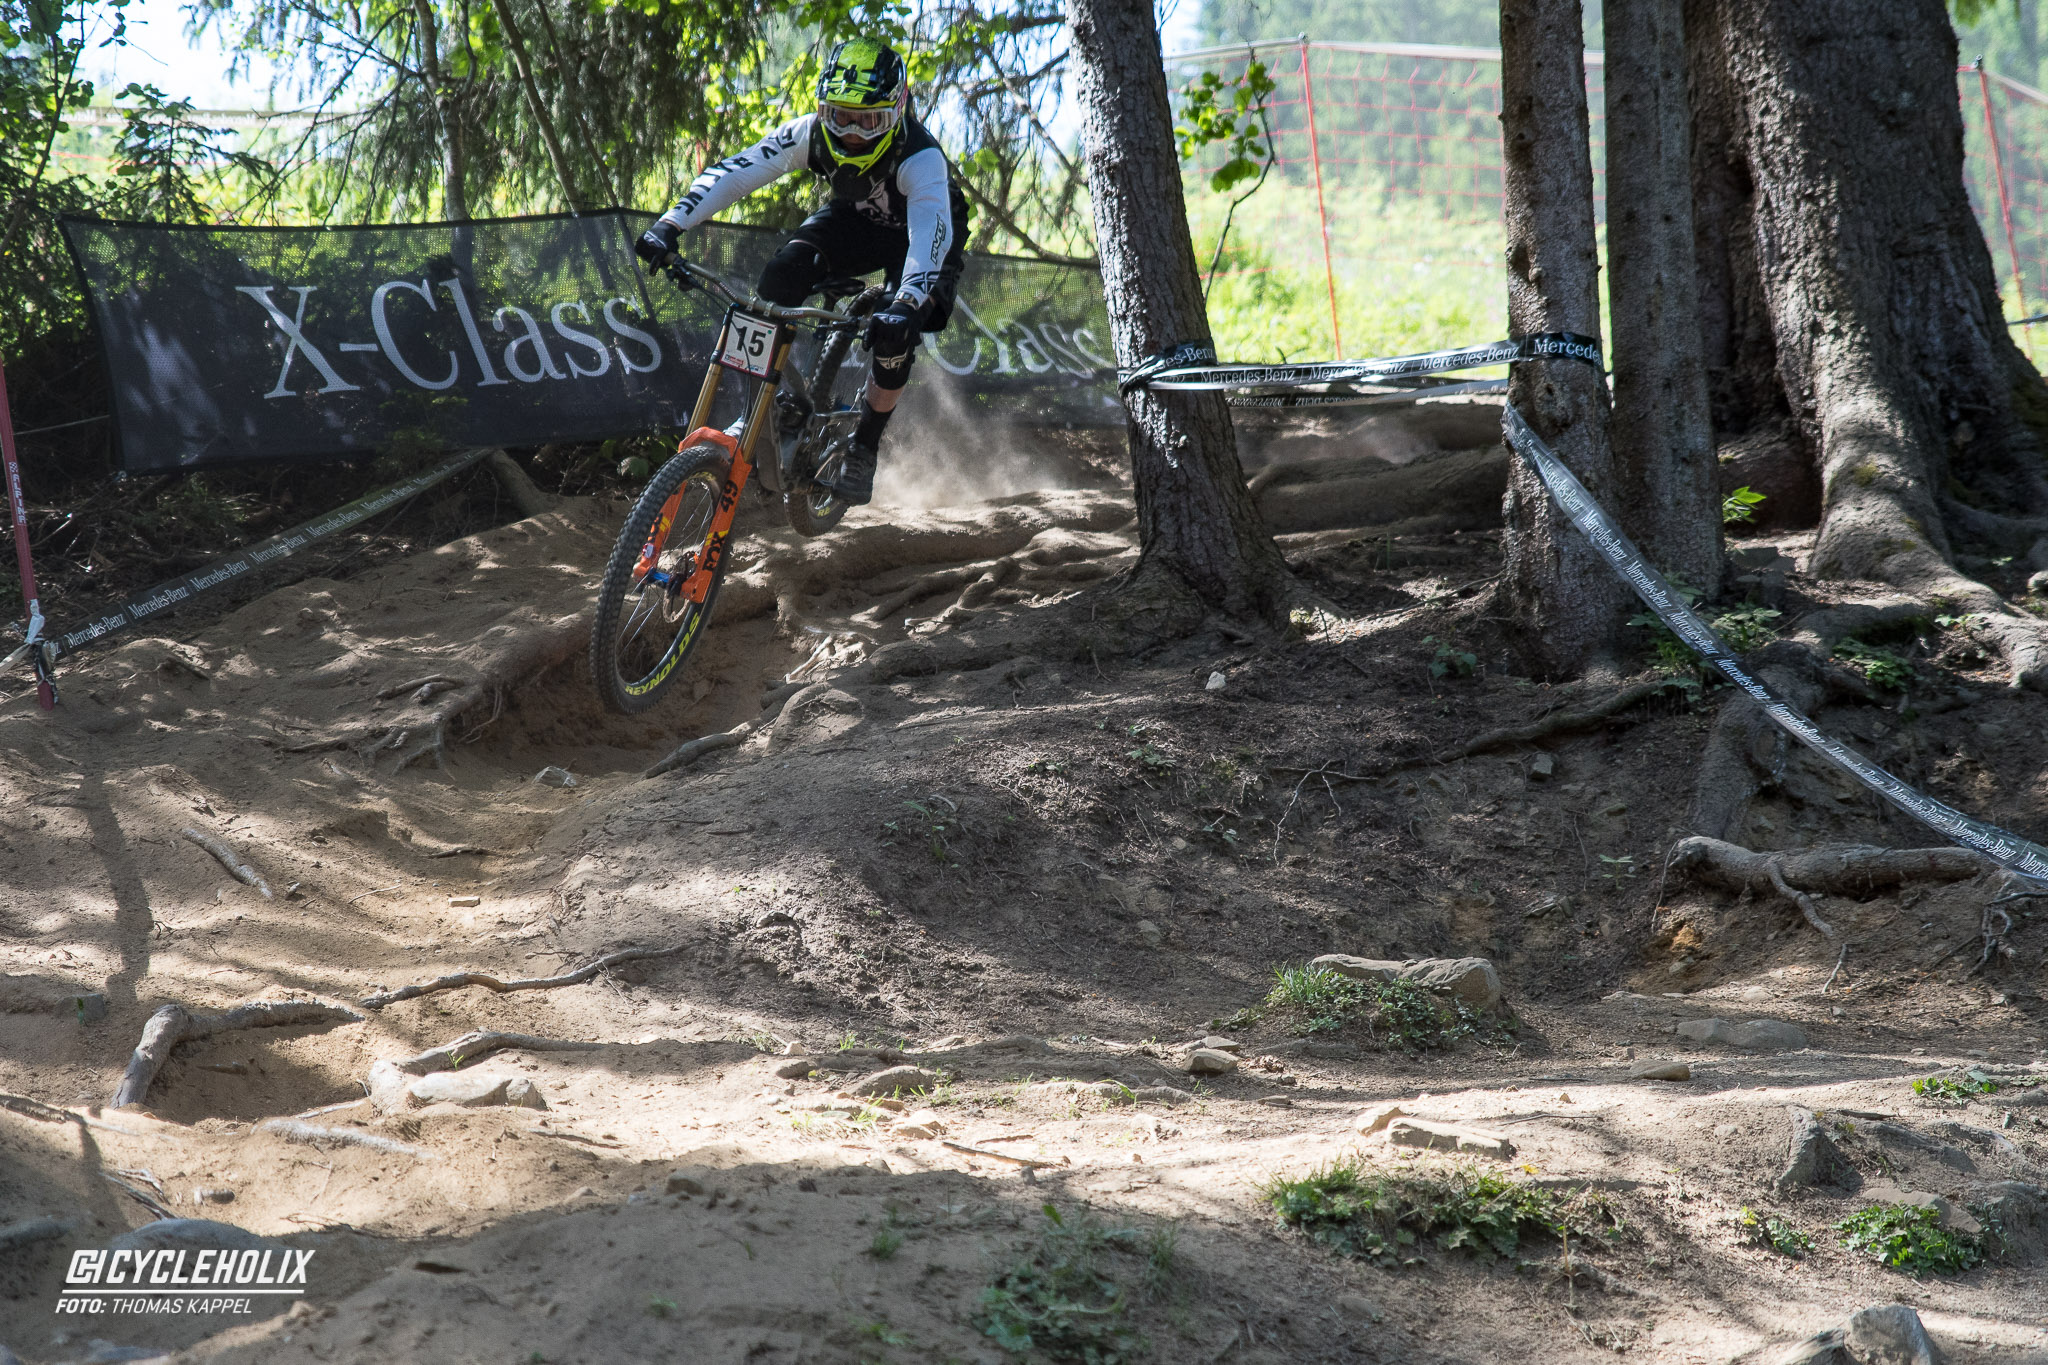 2019 Downhill Worldcup Leogang Finale Action 3 Cycleholix